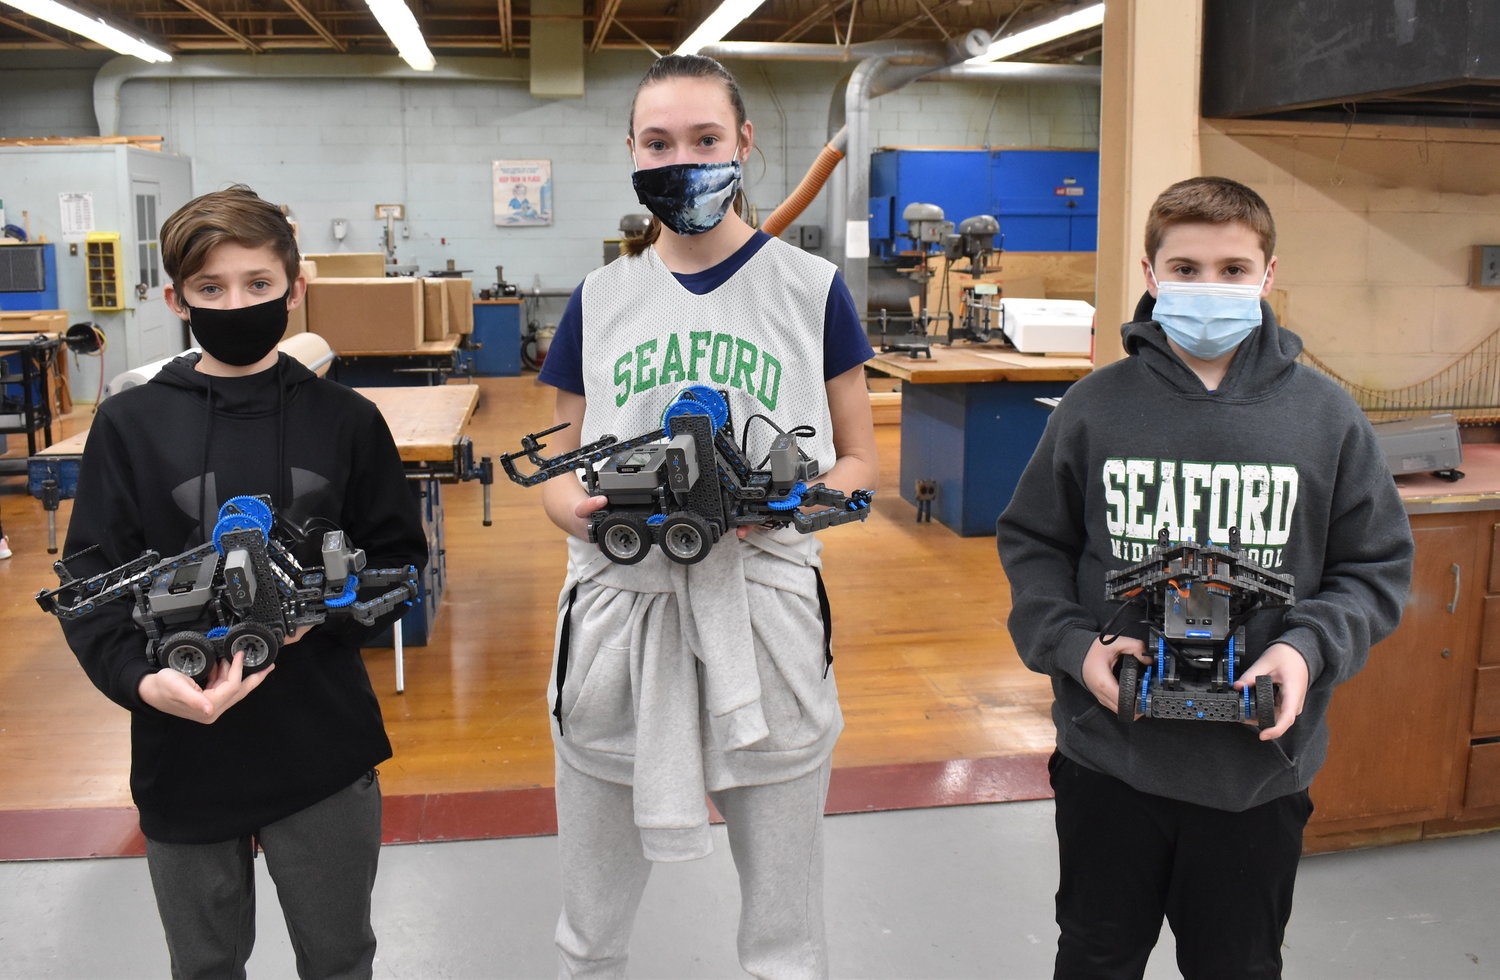 Eighth grade-students Kyle O'Hagan, left, Emily Richardson and Nick DeLeo revealed some of the robots they built in Robotics Club.